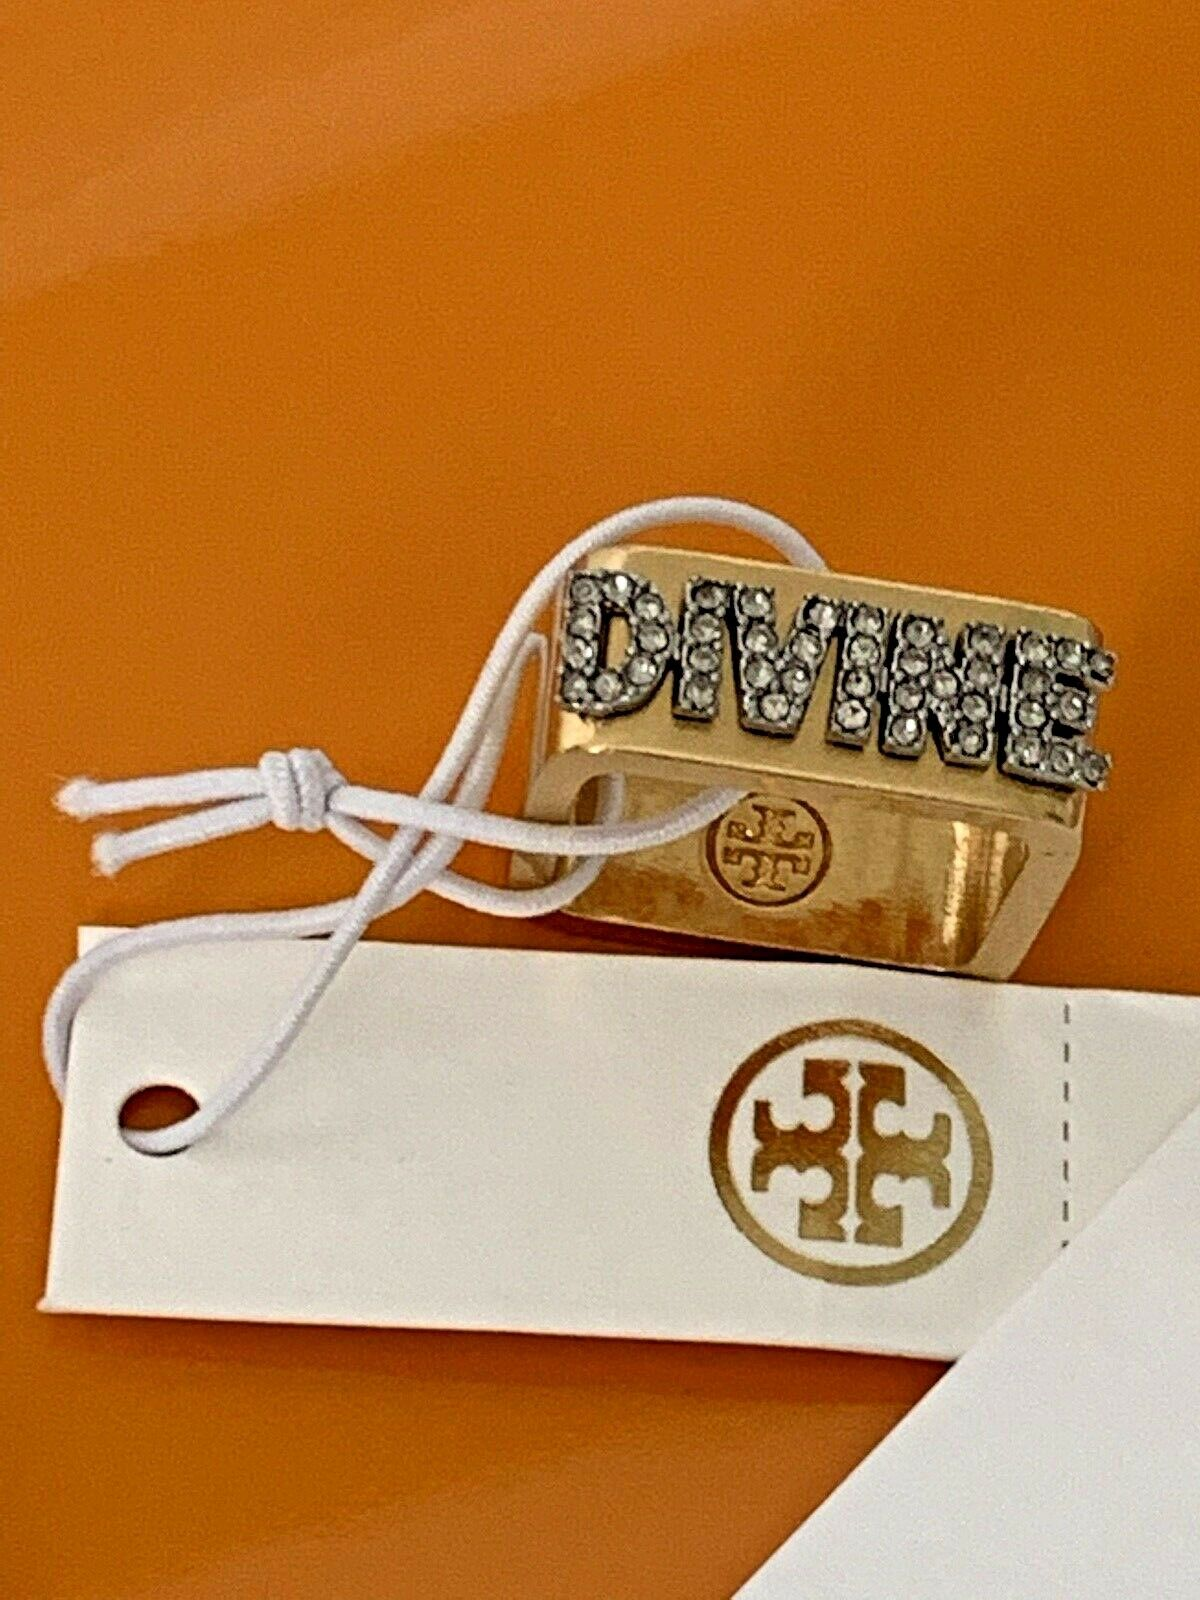 Tory Burch Message Ring Divine Modern Adornment Size 6 or 7 to Choose Brand New